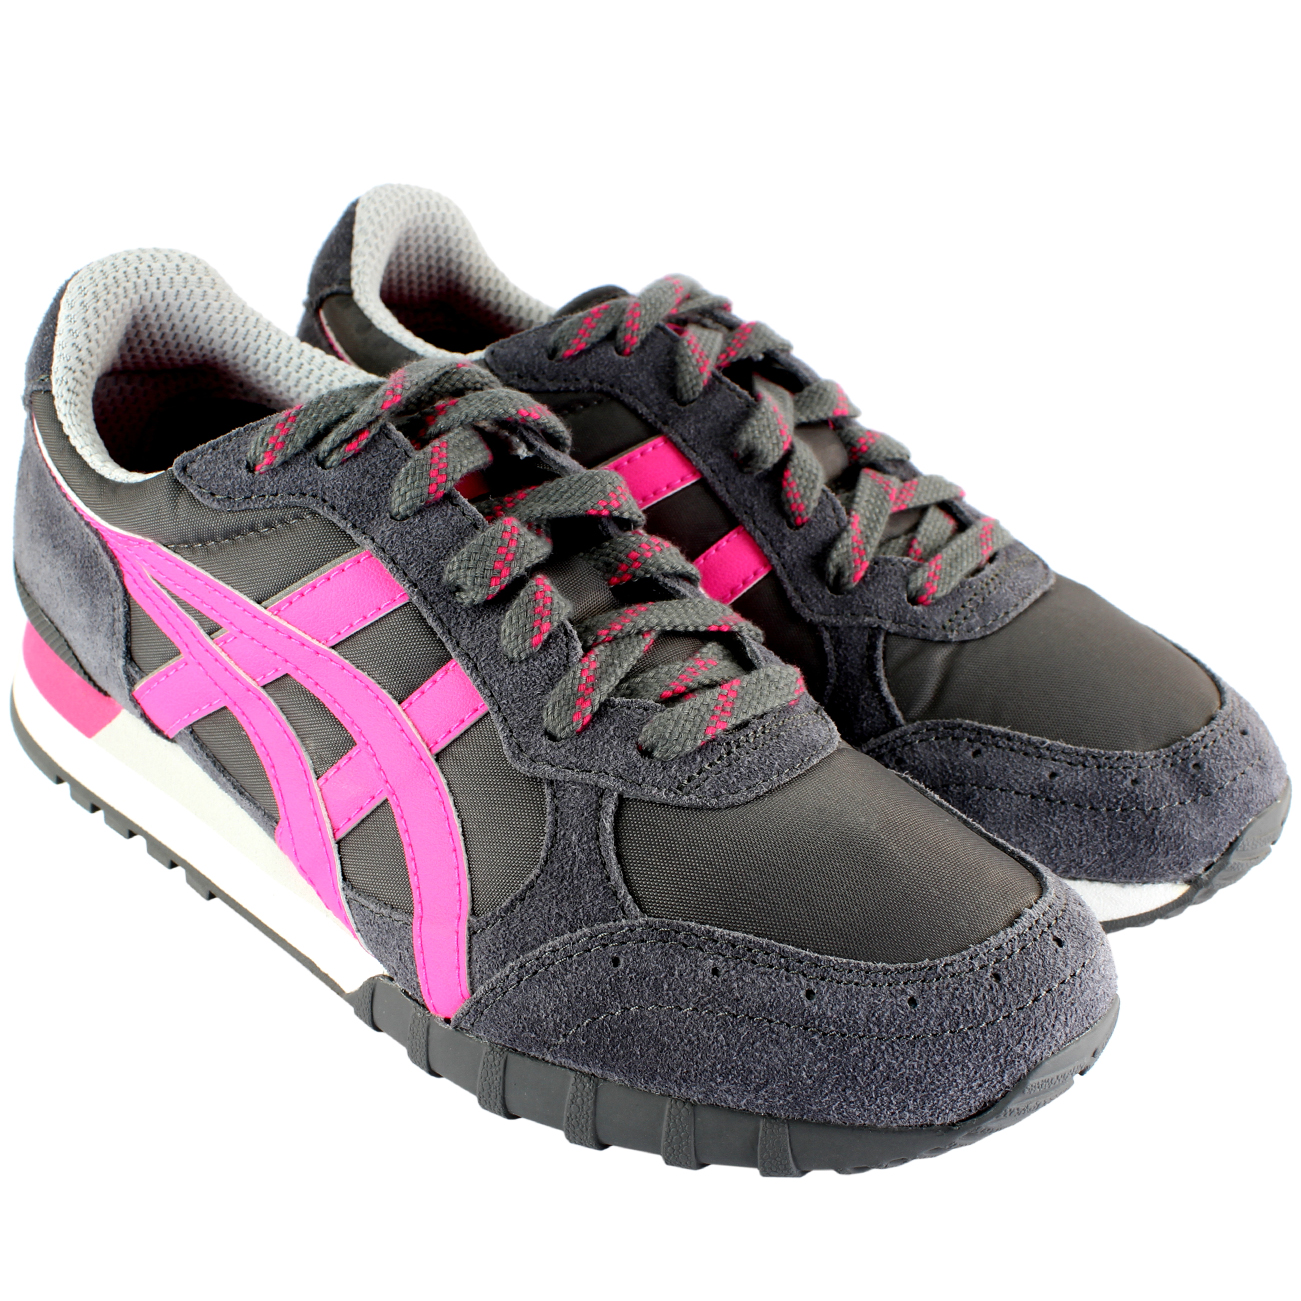 Onitsuka Tiger Colorado Low Top Trainers